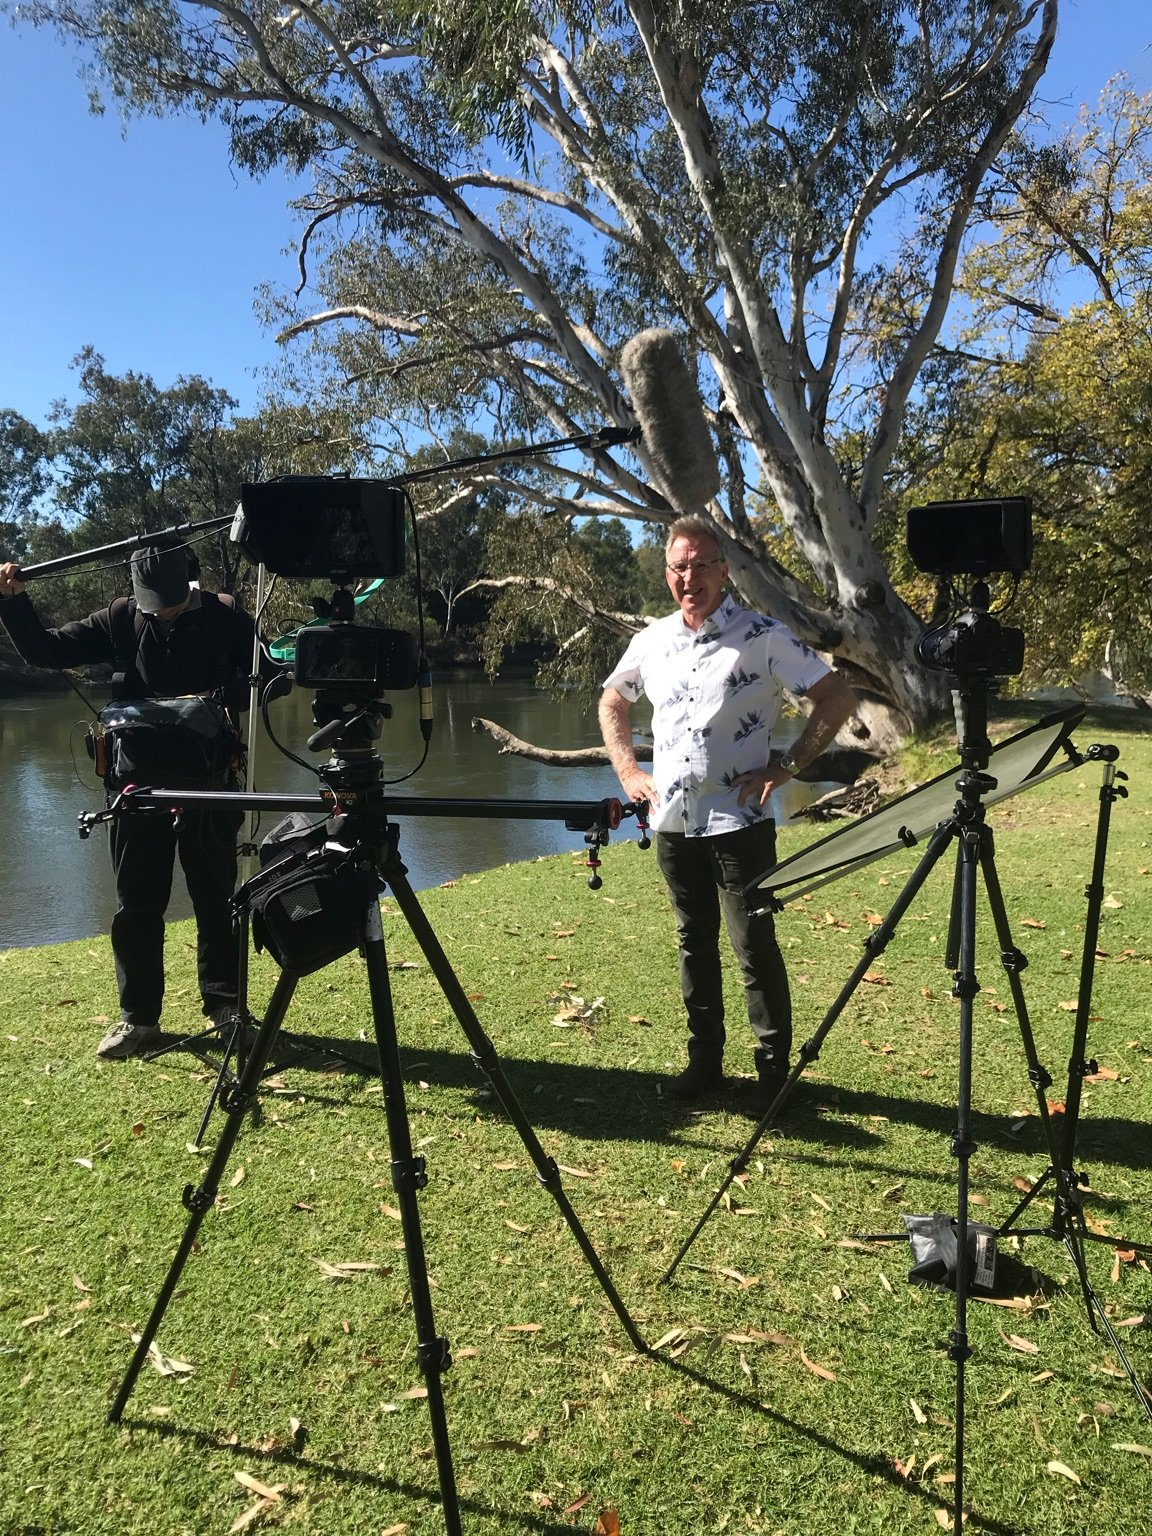 Kevin Mack, independent candidate for Farrer filming at Noreuil Park Foreshore